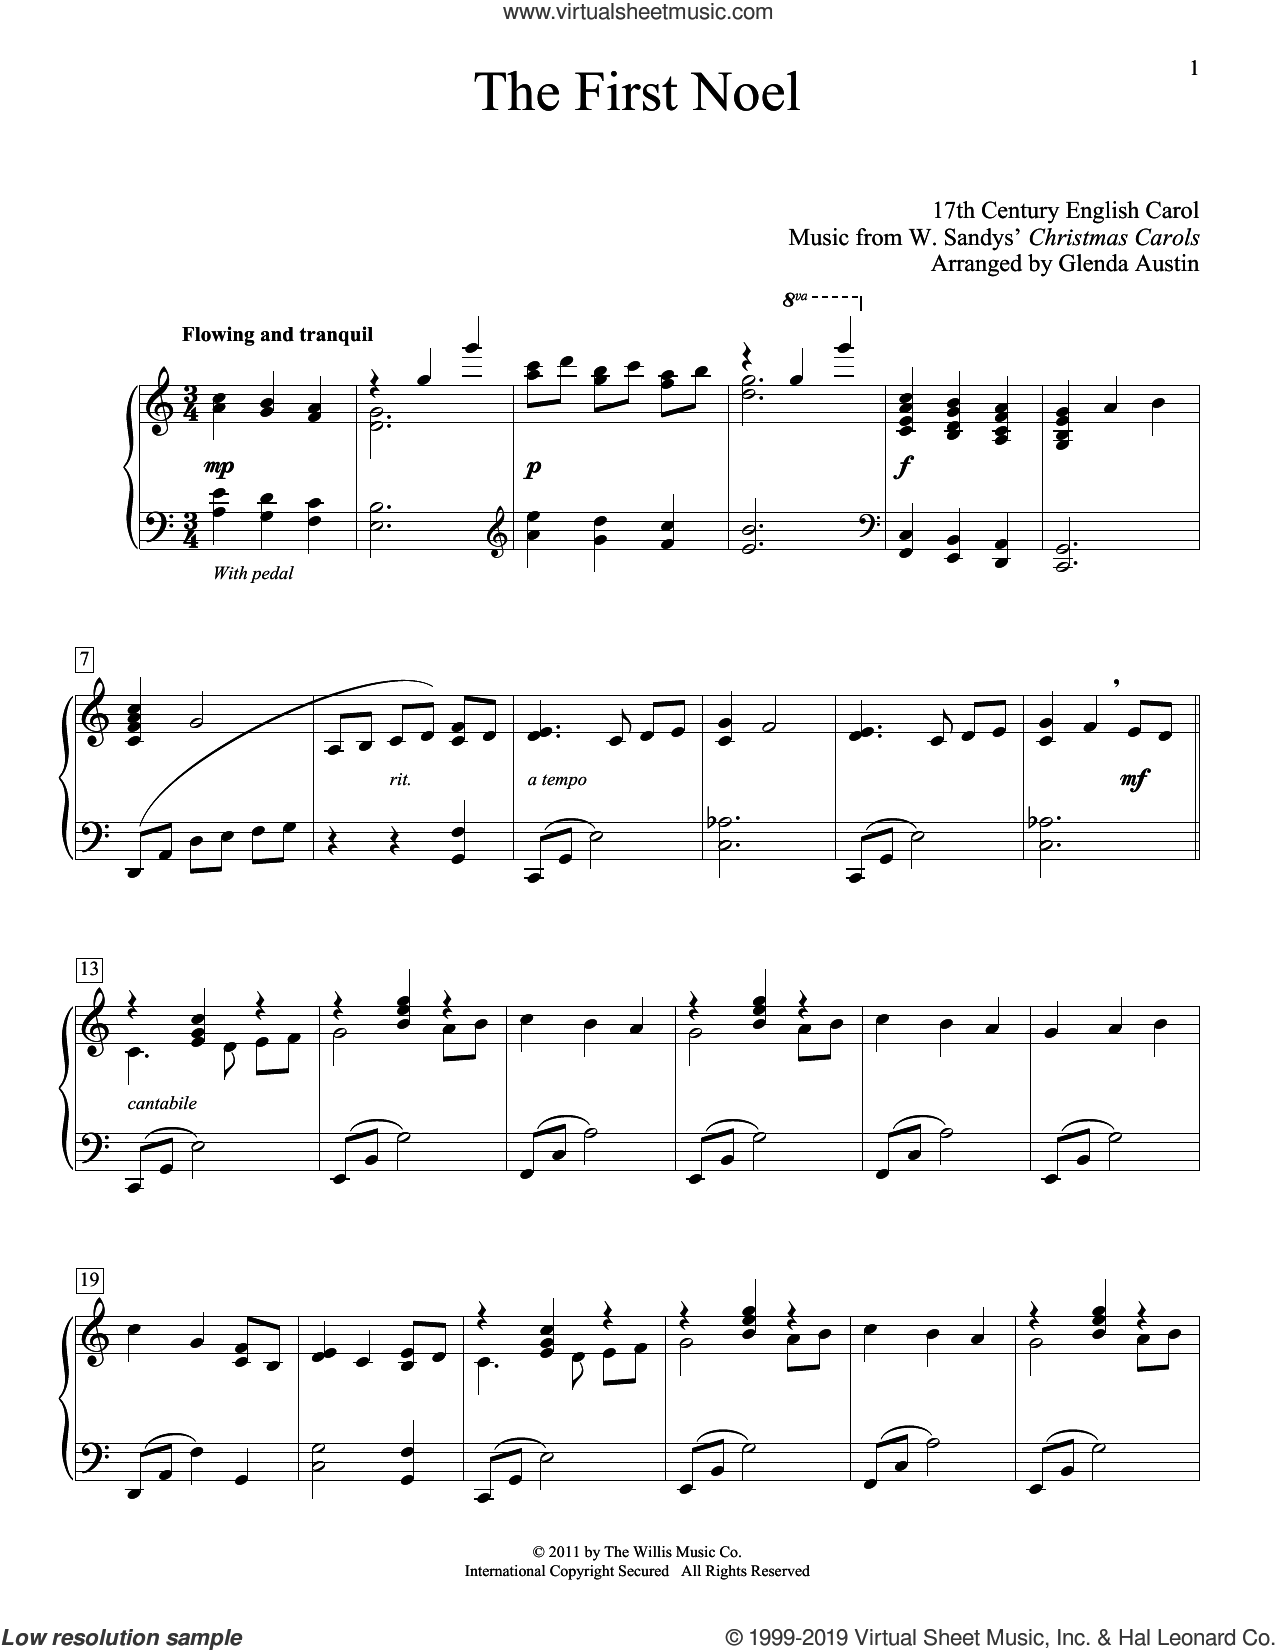 The First Noel (arr. Glenda Austin) sheet music for piano solo by Anonymous, Glenda Austin and Miscellaneous, intermediate skill level